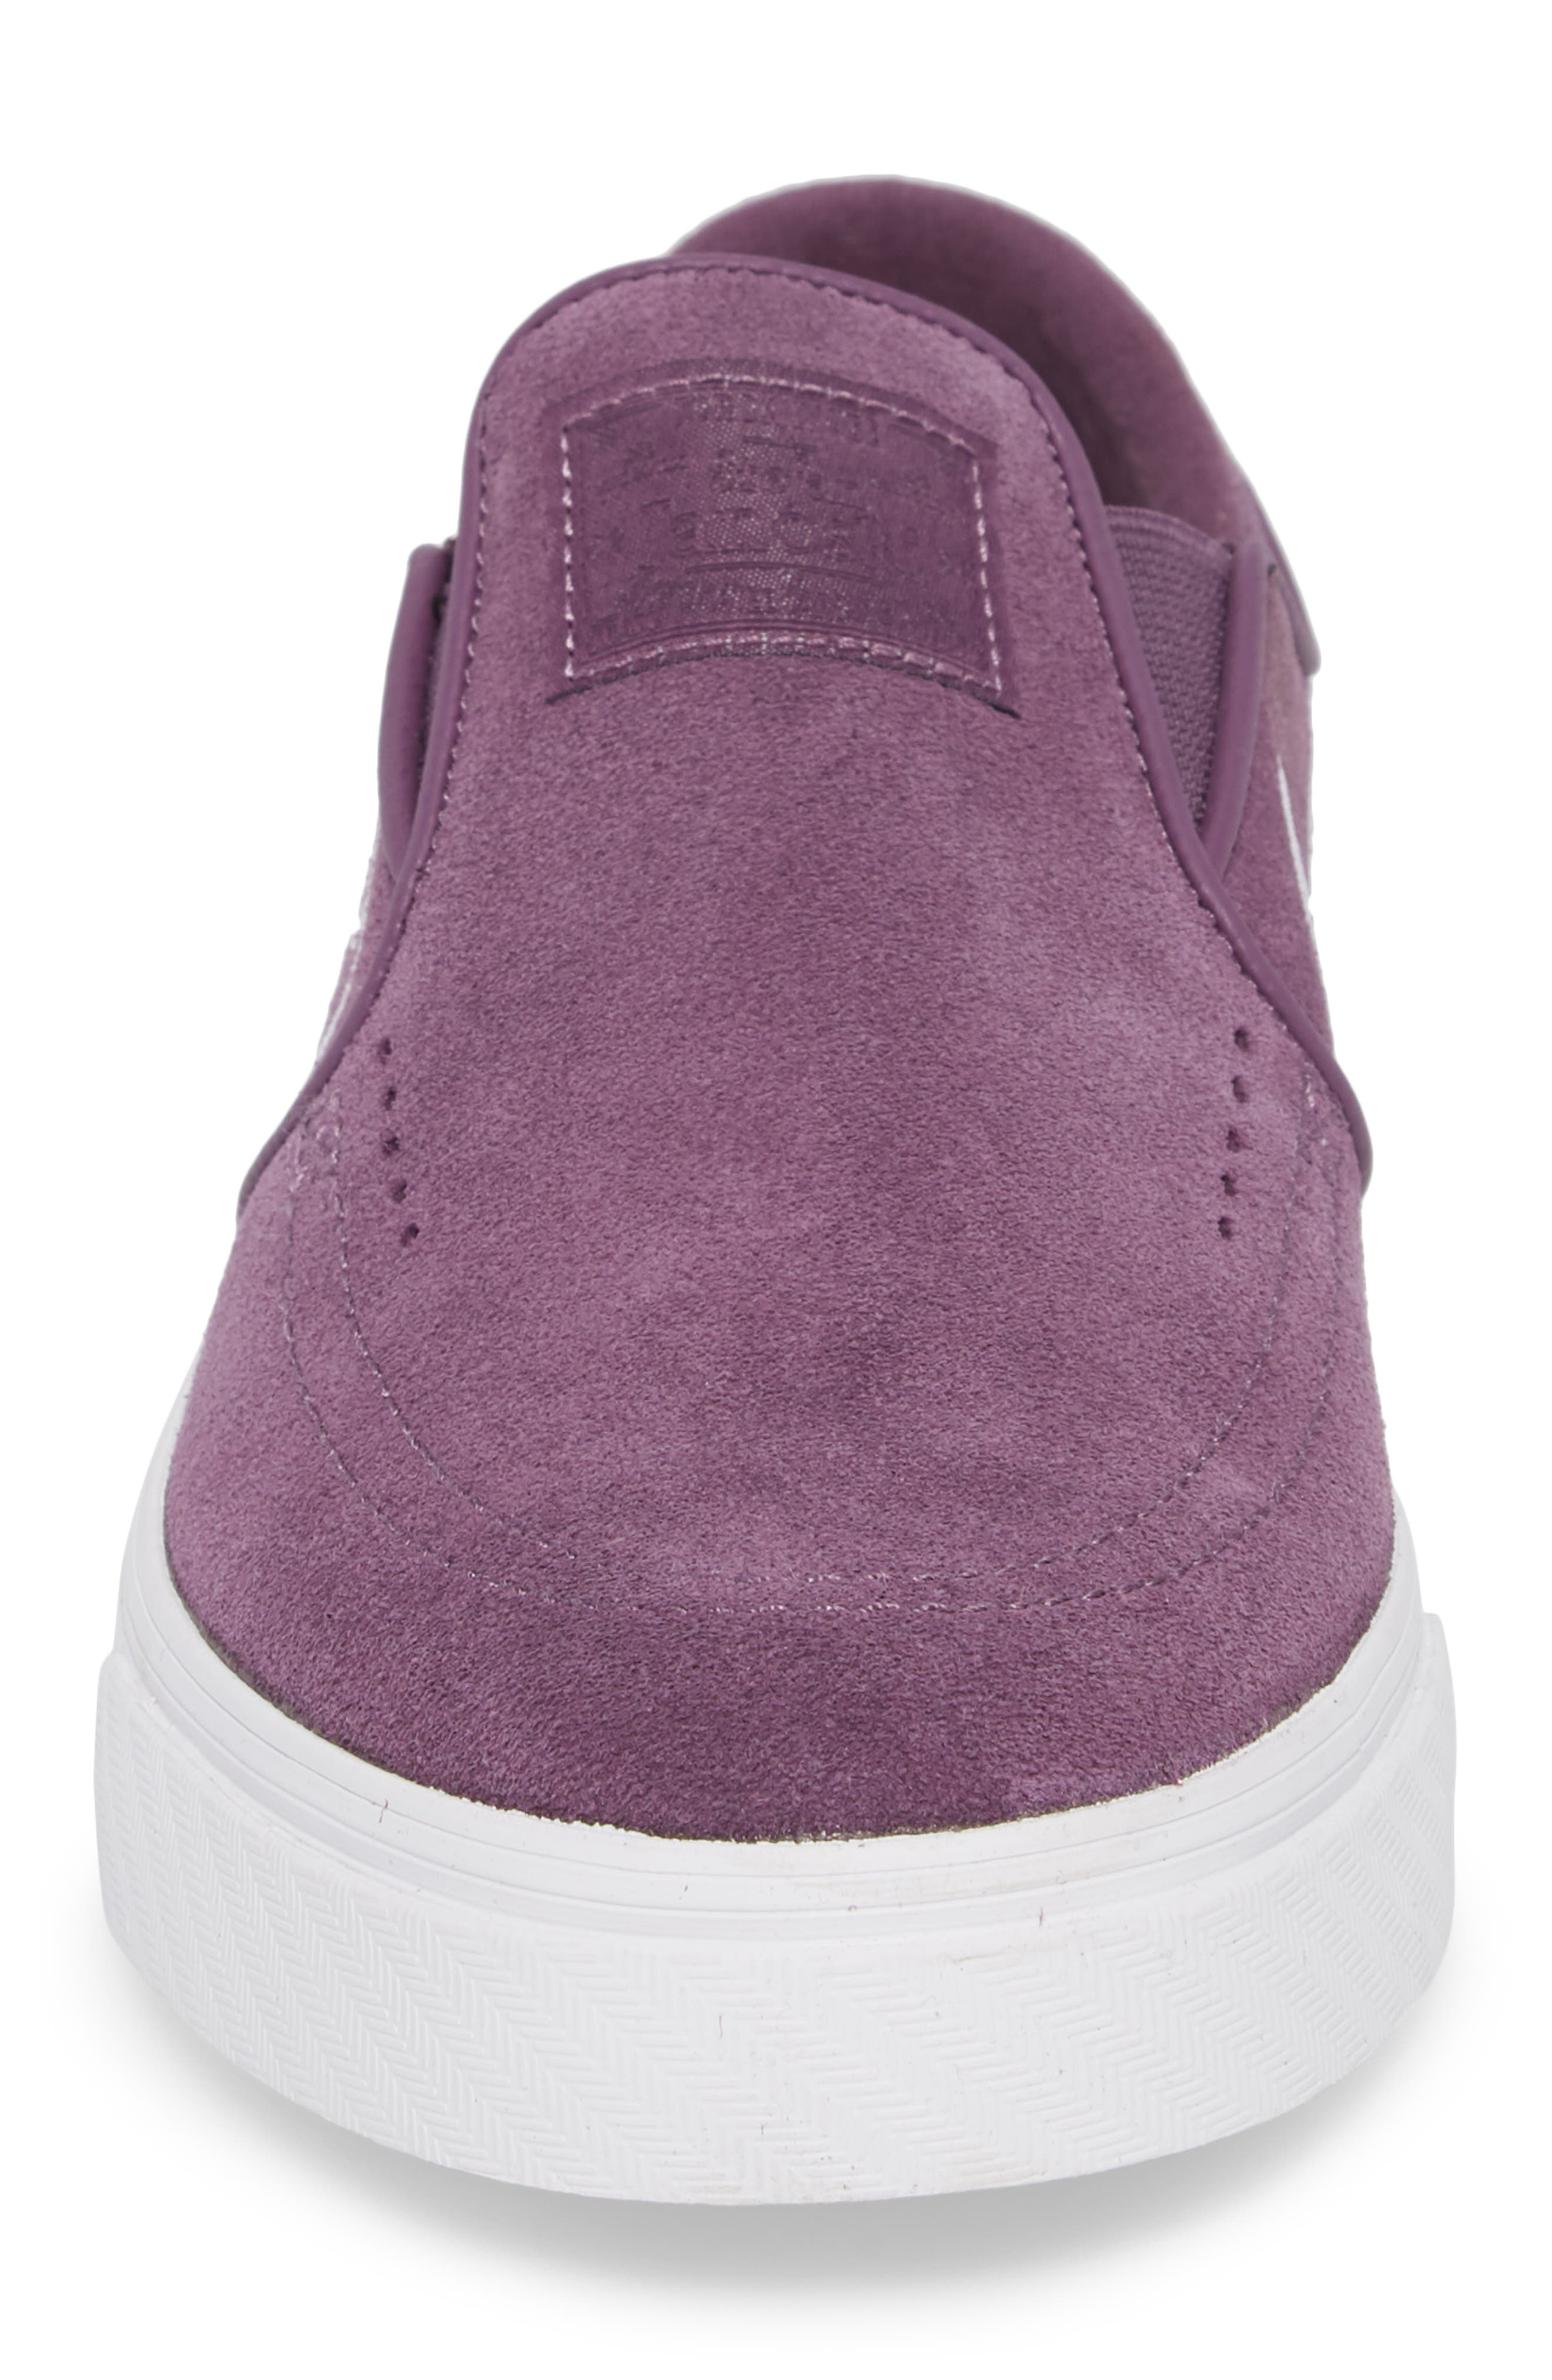 Zoom Stefan Janoski Slip-On,                             Alternate thumbnail 4, color,                             Pro Purple/ White/ Grey